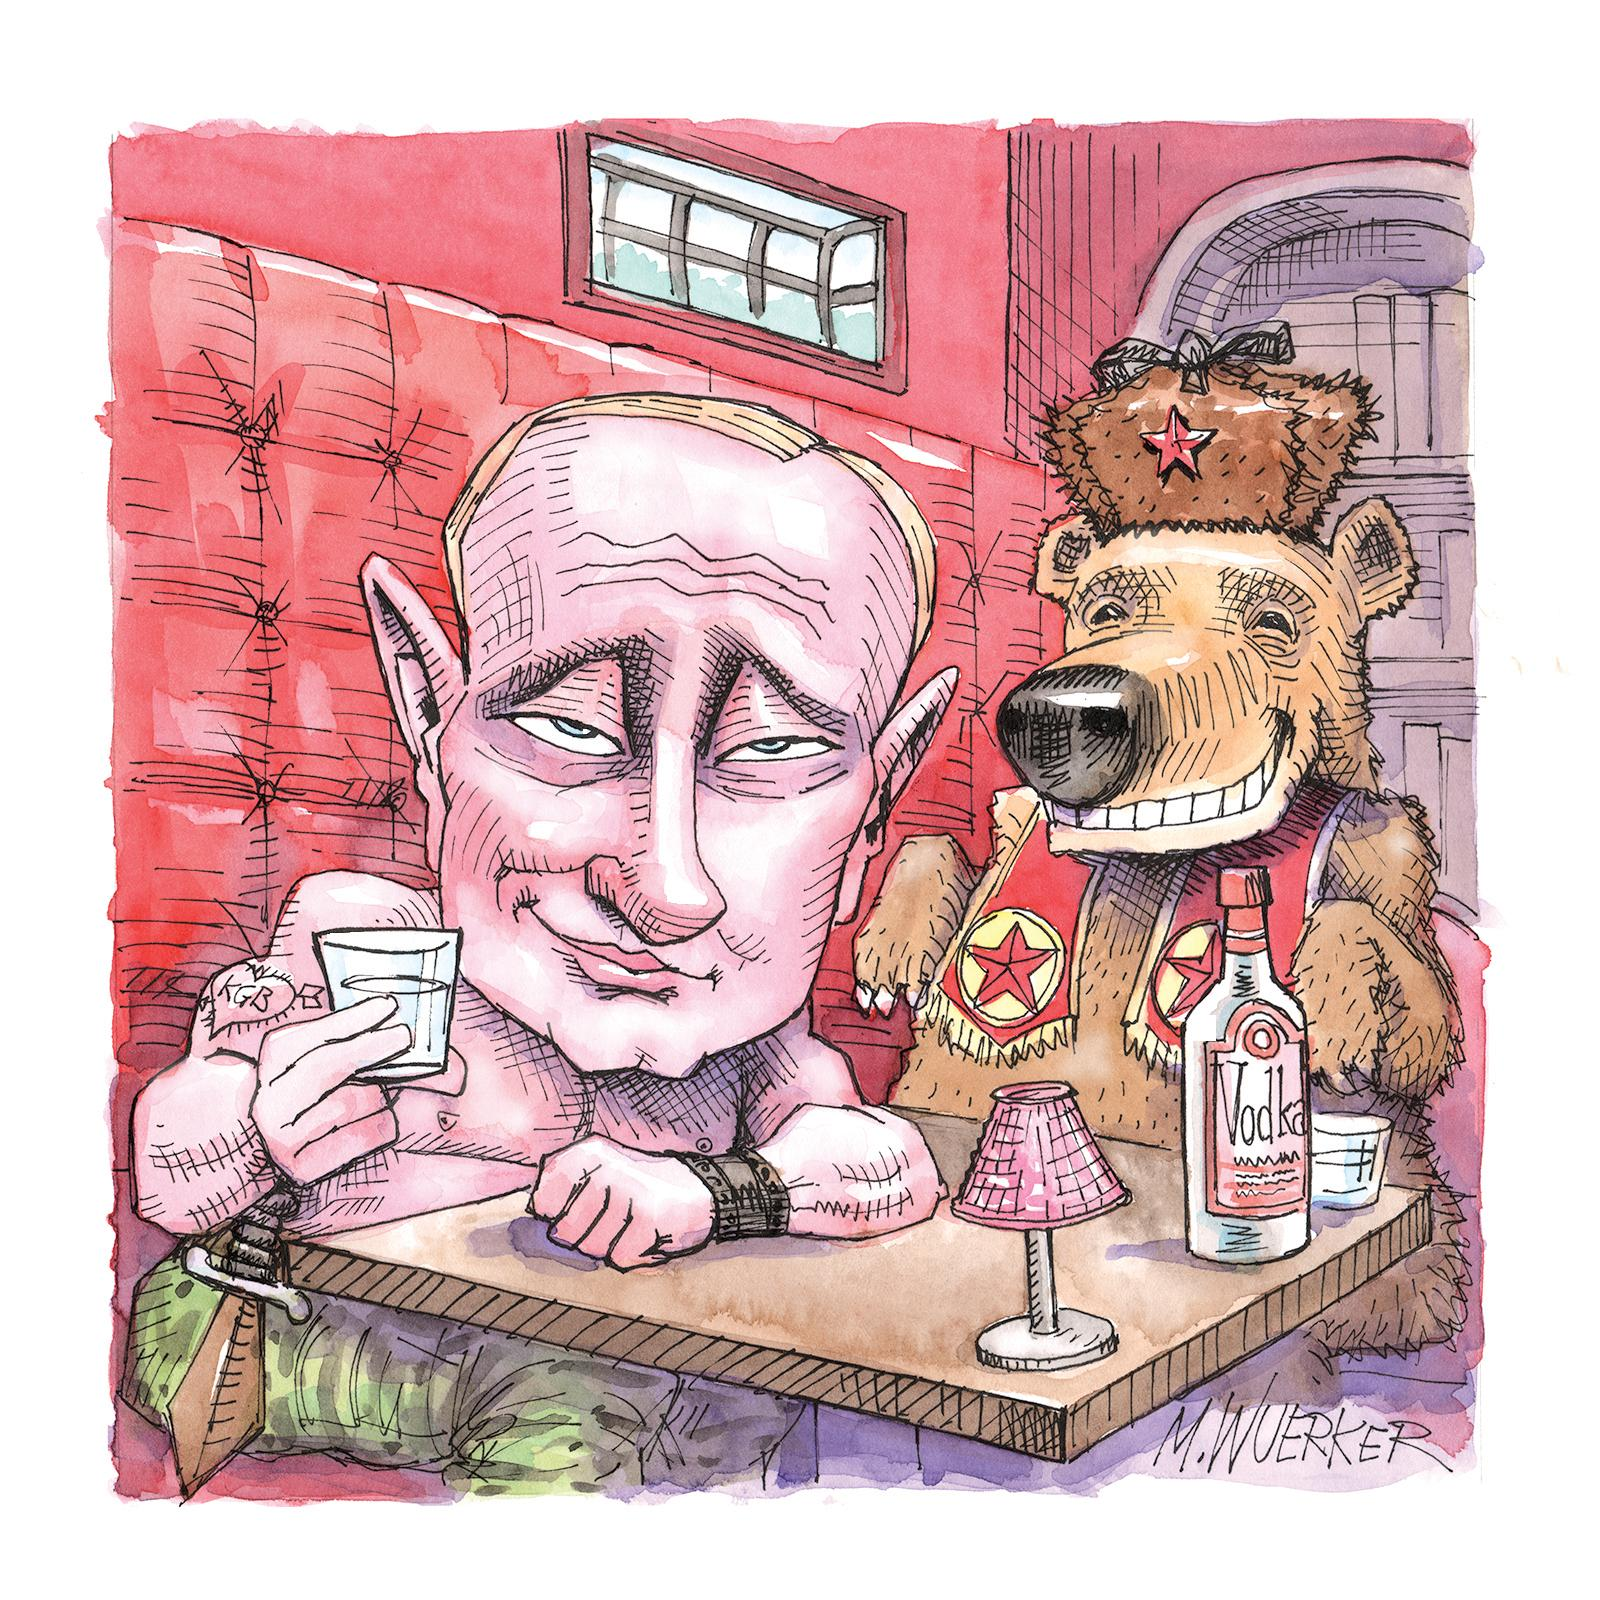 Vladimir Putin drawn by Matt Wuerker (Image: Courtesy The Hay-Adams)